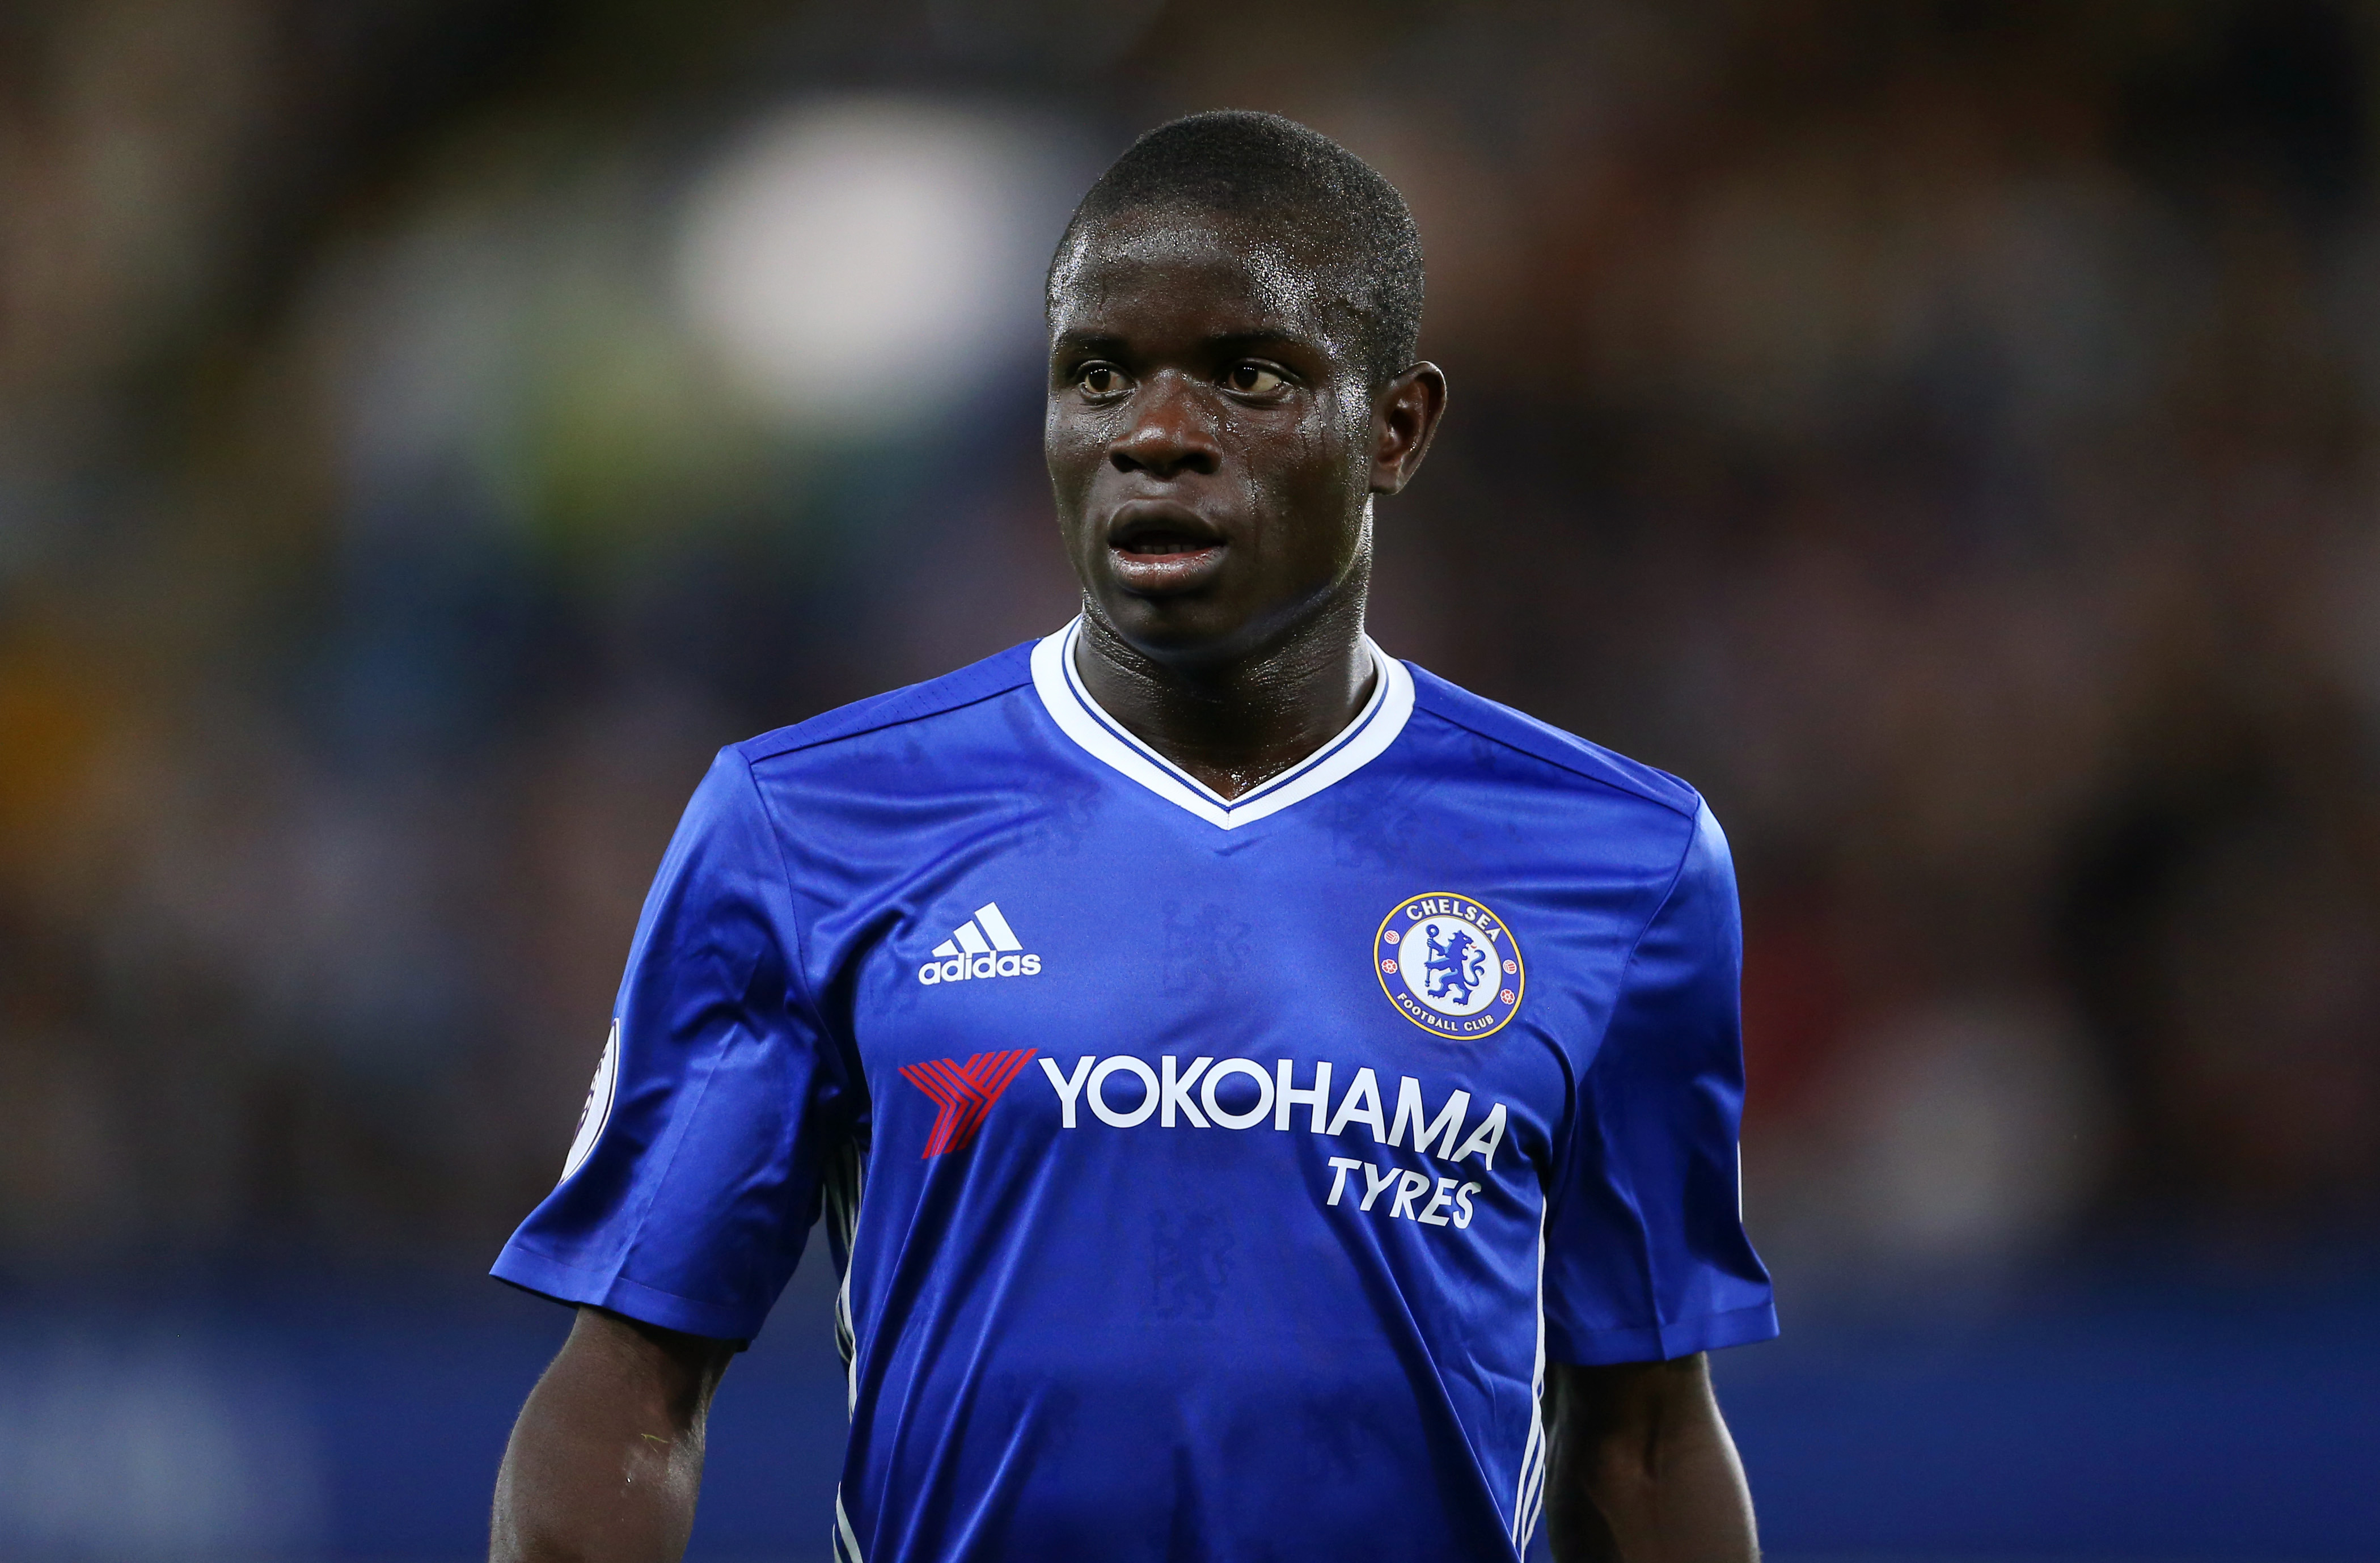 Chelsea legend Didier Drogba inspired me to be the best, says N'Golo Kante